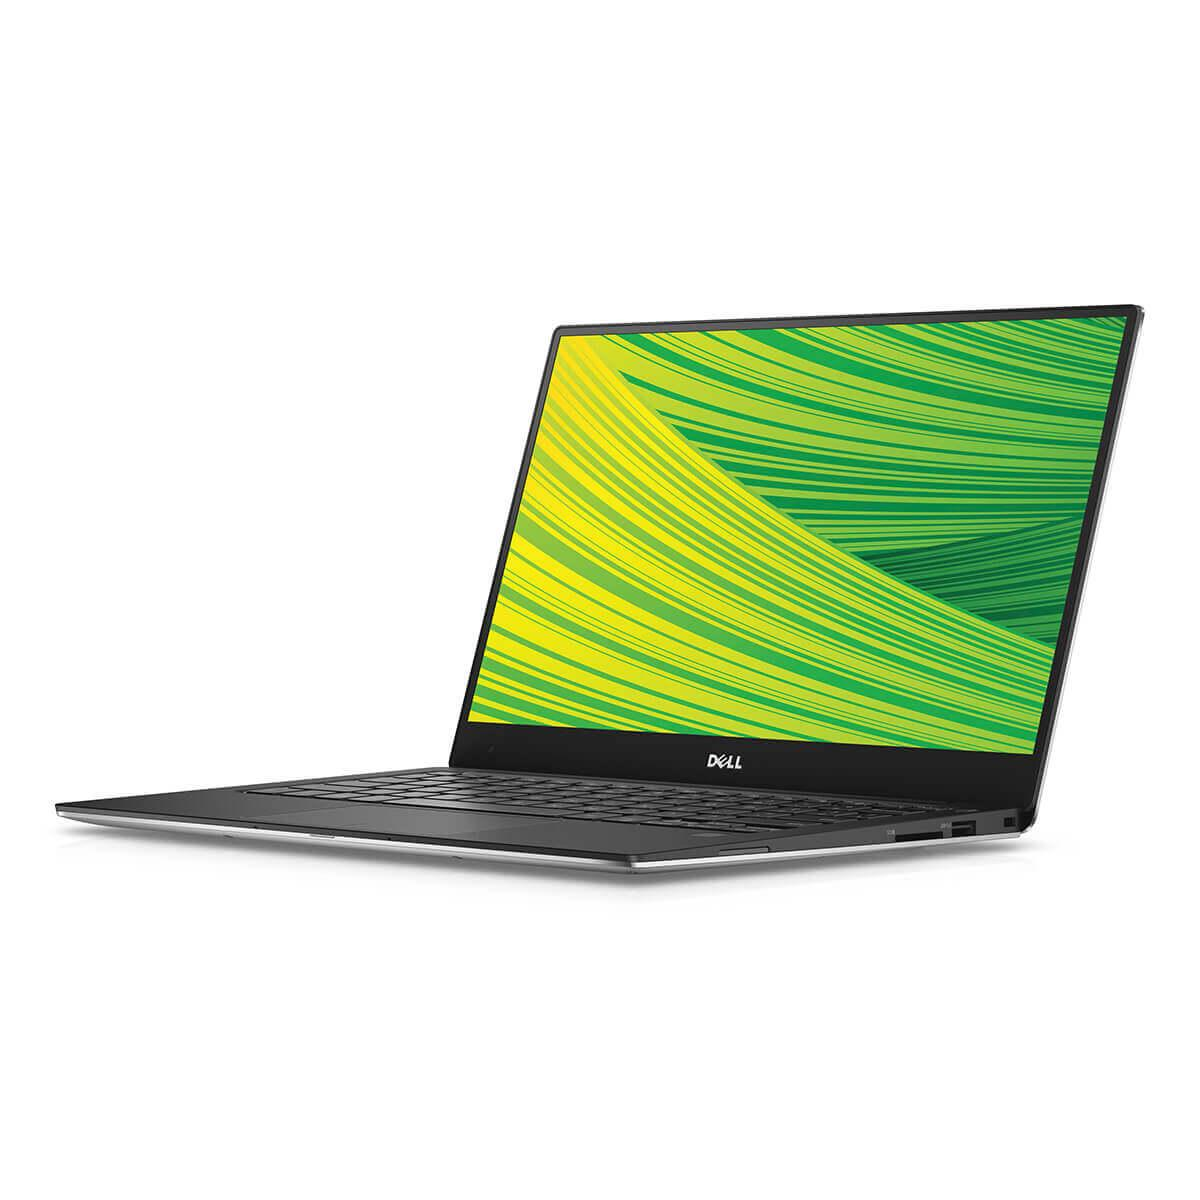 Dell XPS 13 9360-82582SGL (8th Gen Intel Core i5-8250U,8GB RAM,Intel HD Graphics 620,256GB SSD)